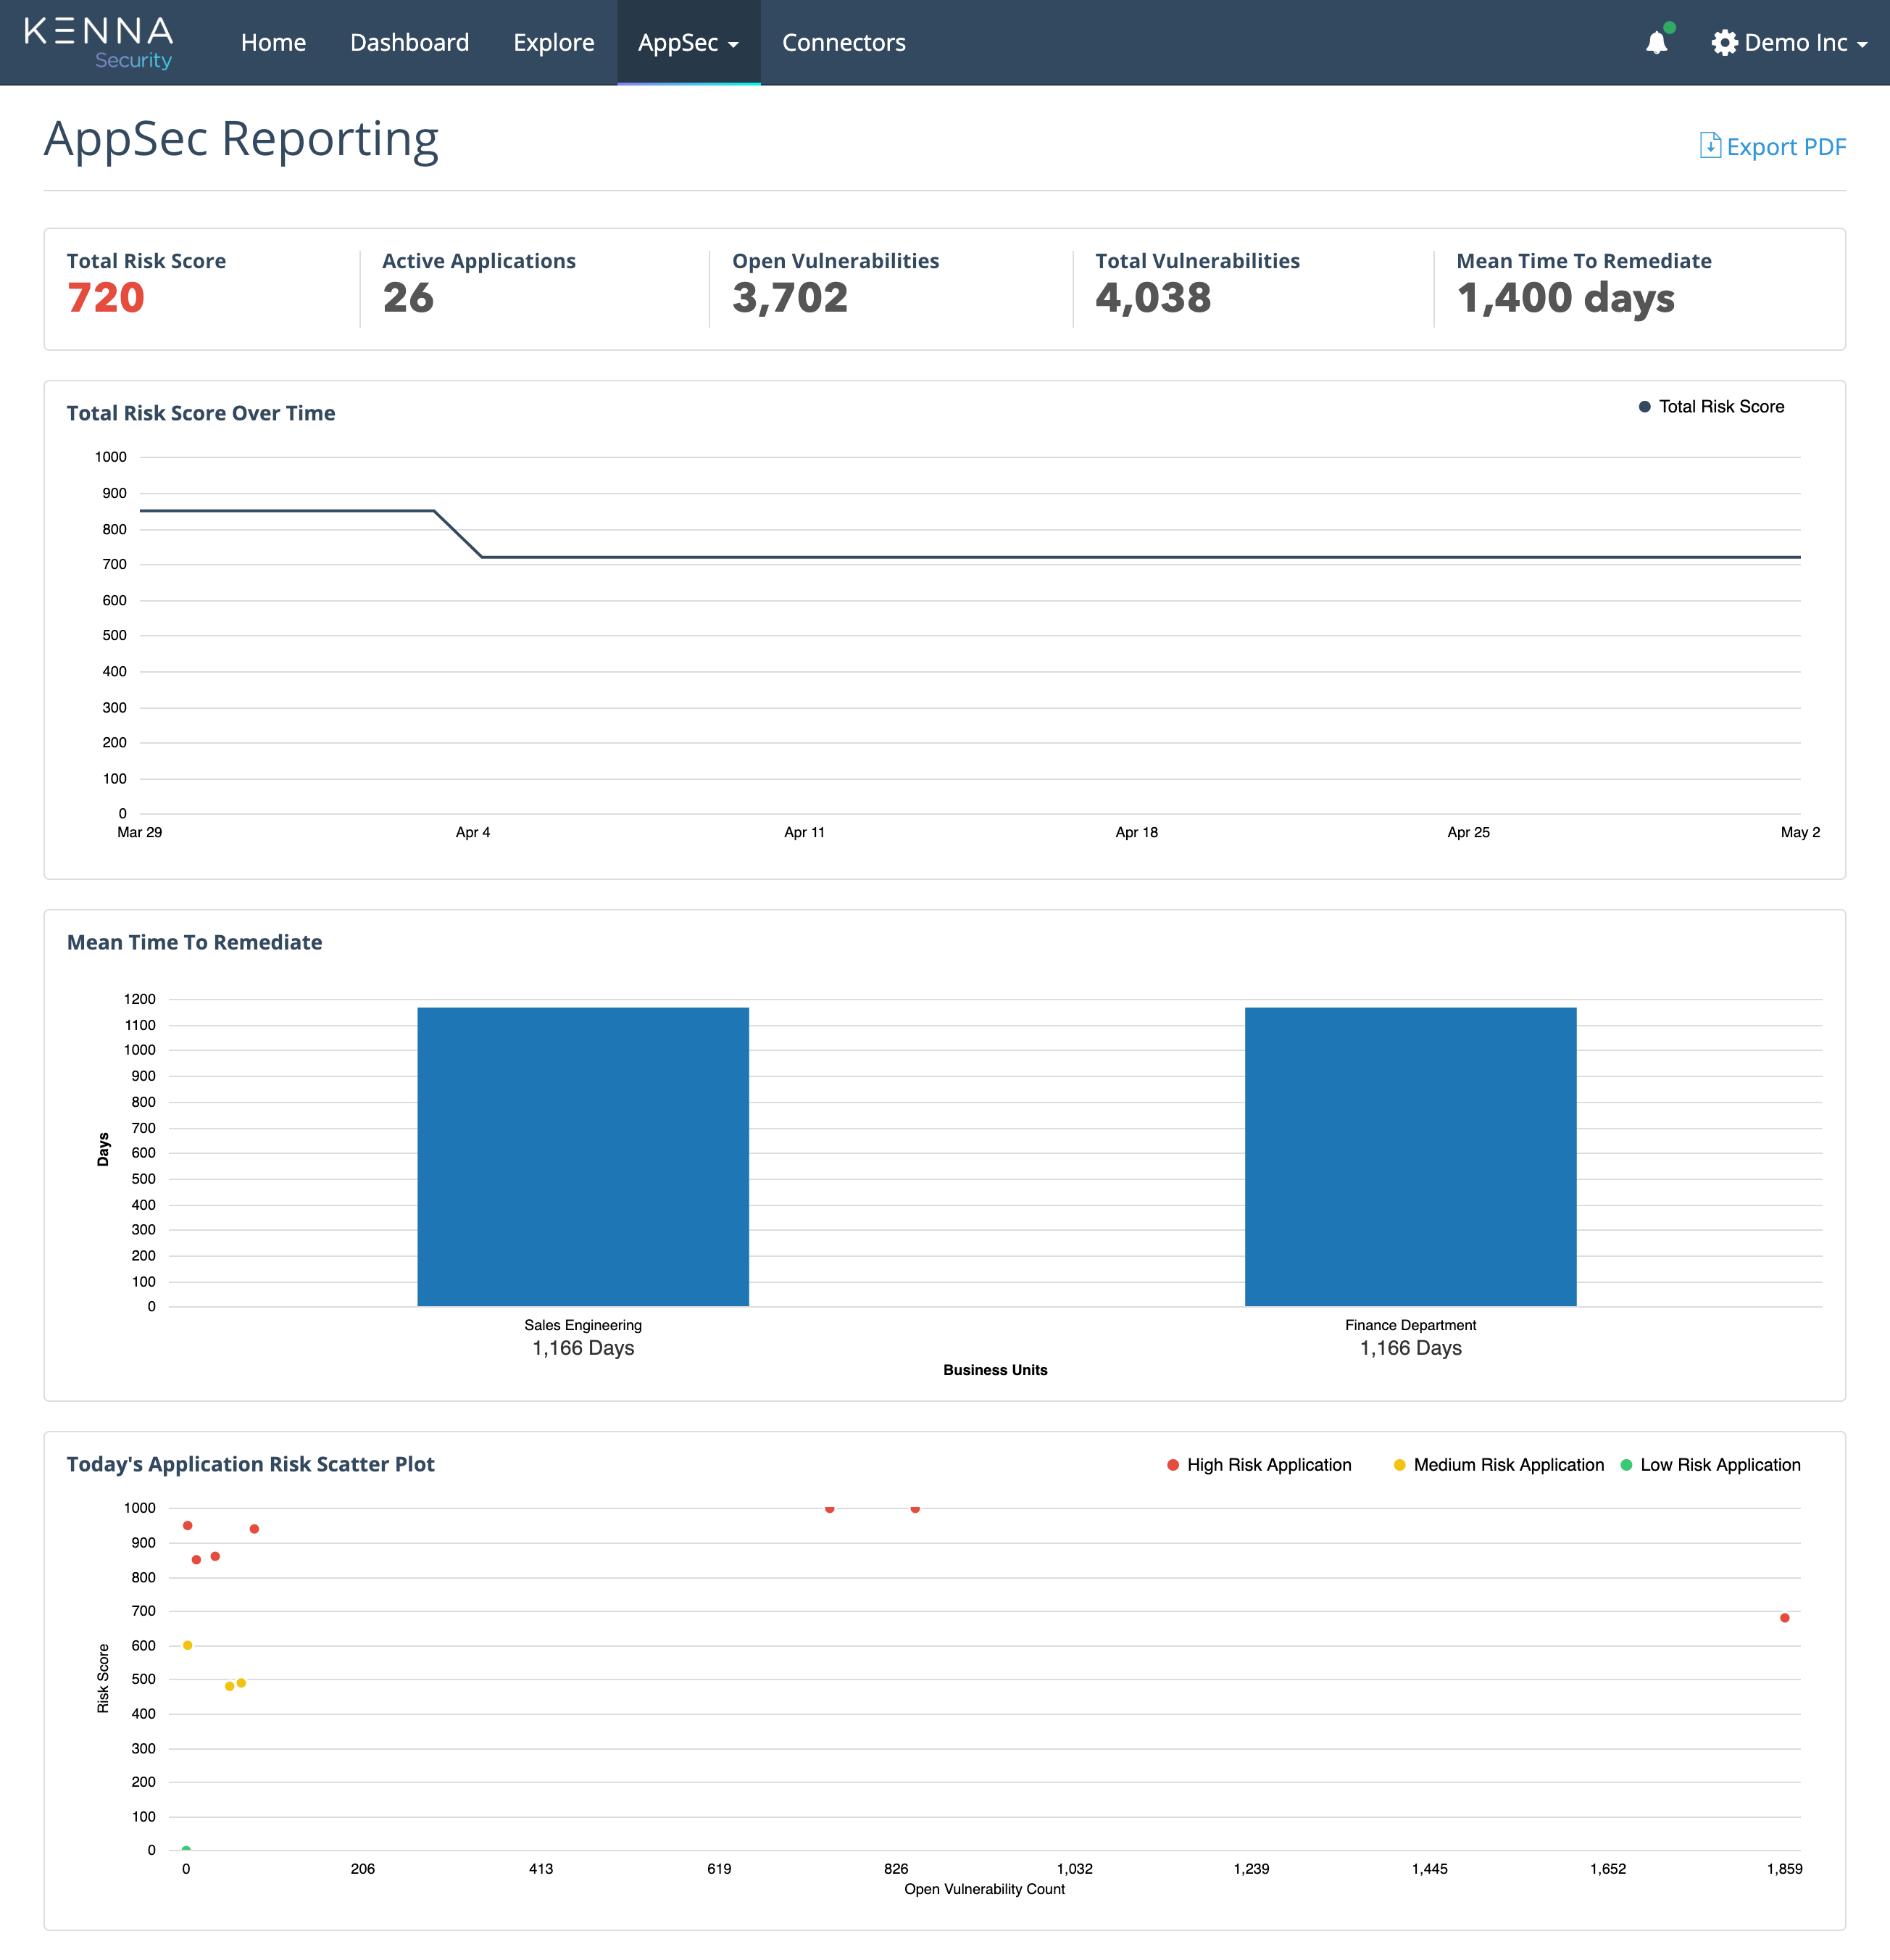 appsec_reporting.png